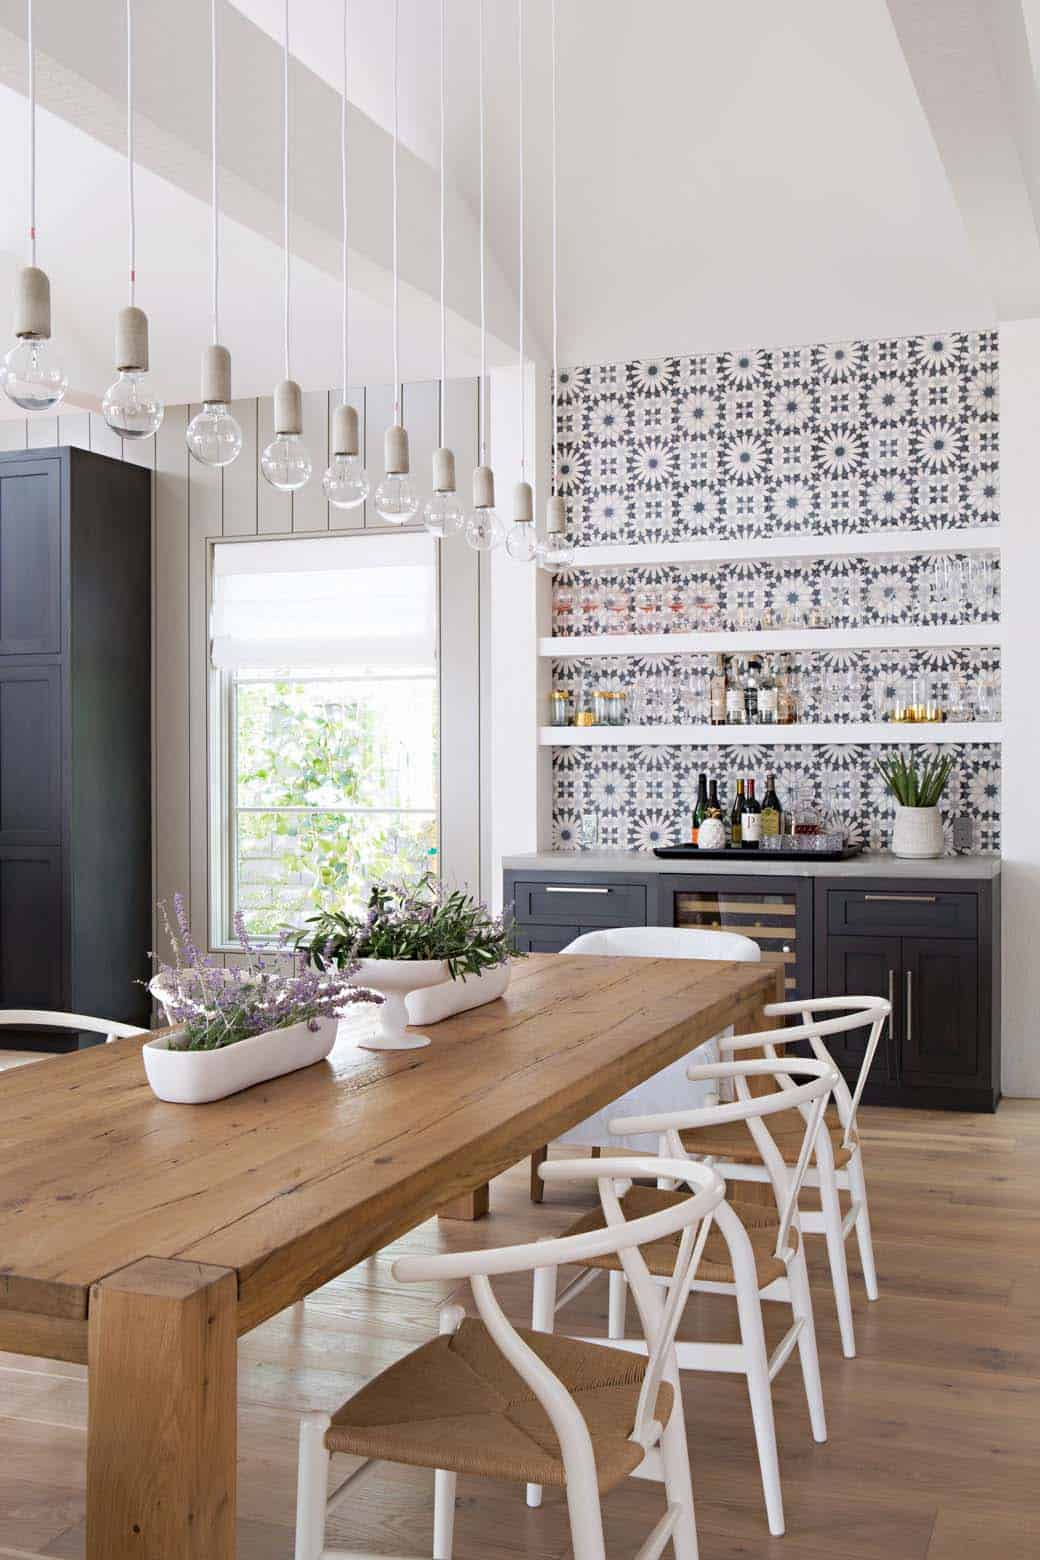 Modern Farmhouse Style-Eric Olsen Design-09-1 Kindesign